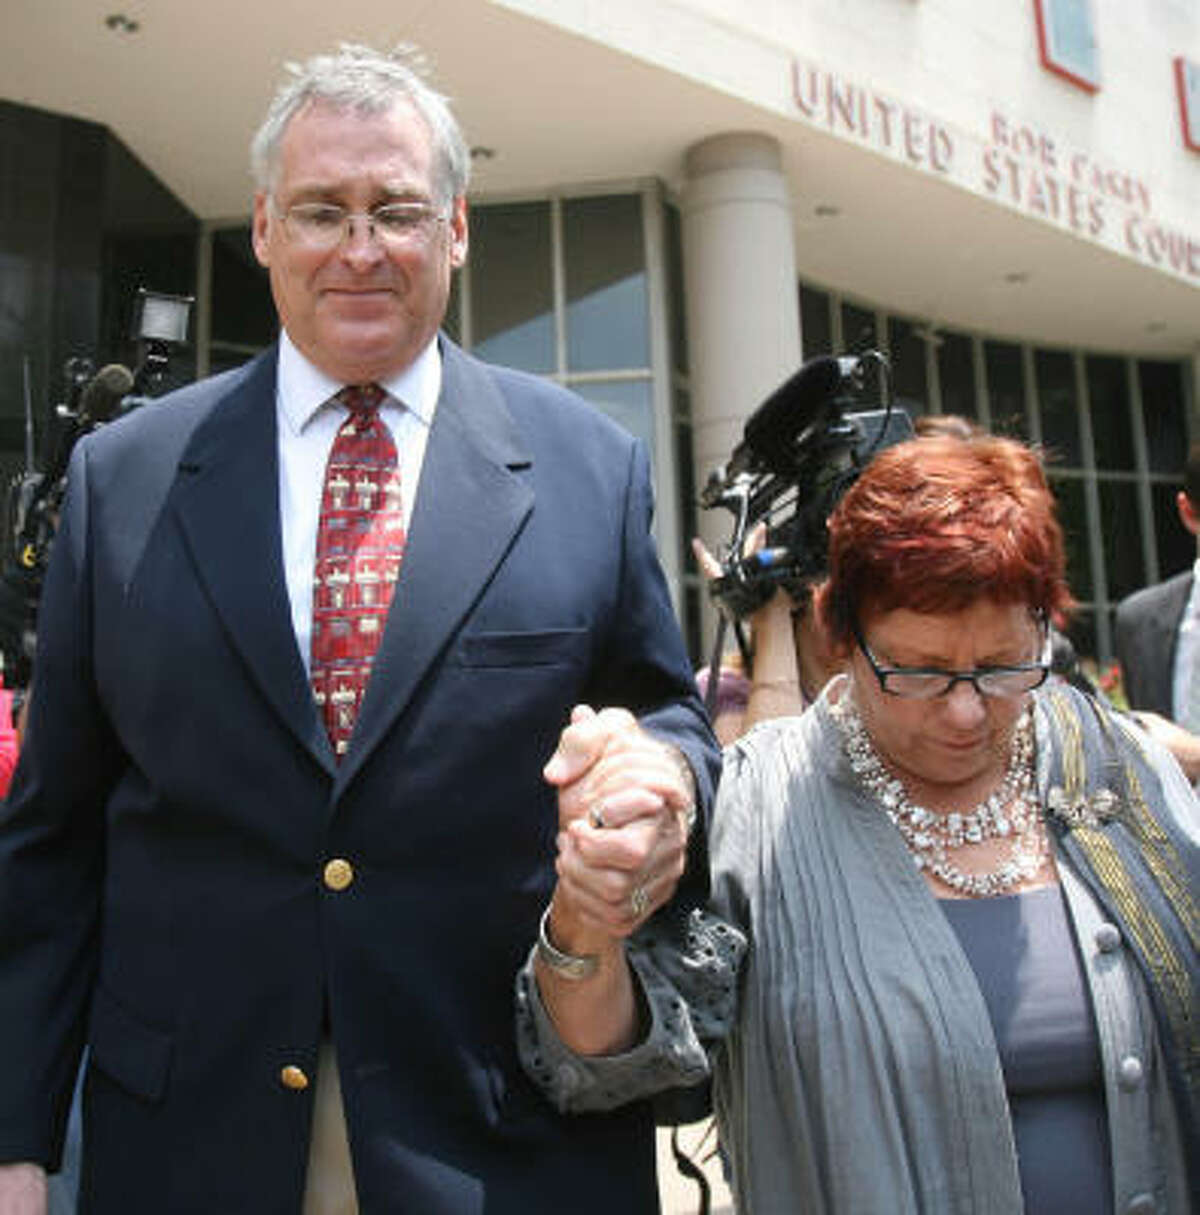 U.S. District Court Judge Samuel B. Kent is shown with his wife, Sarah, in May. He was charged with trying to cover up sexual assaults on two female employees.